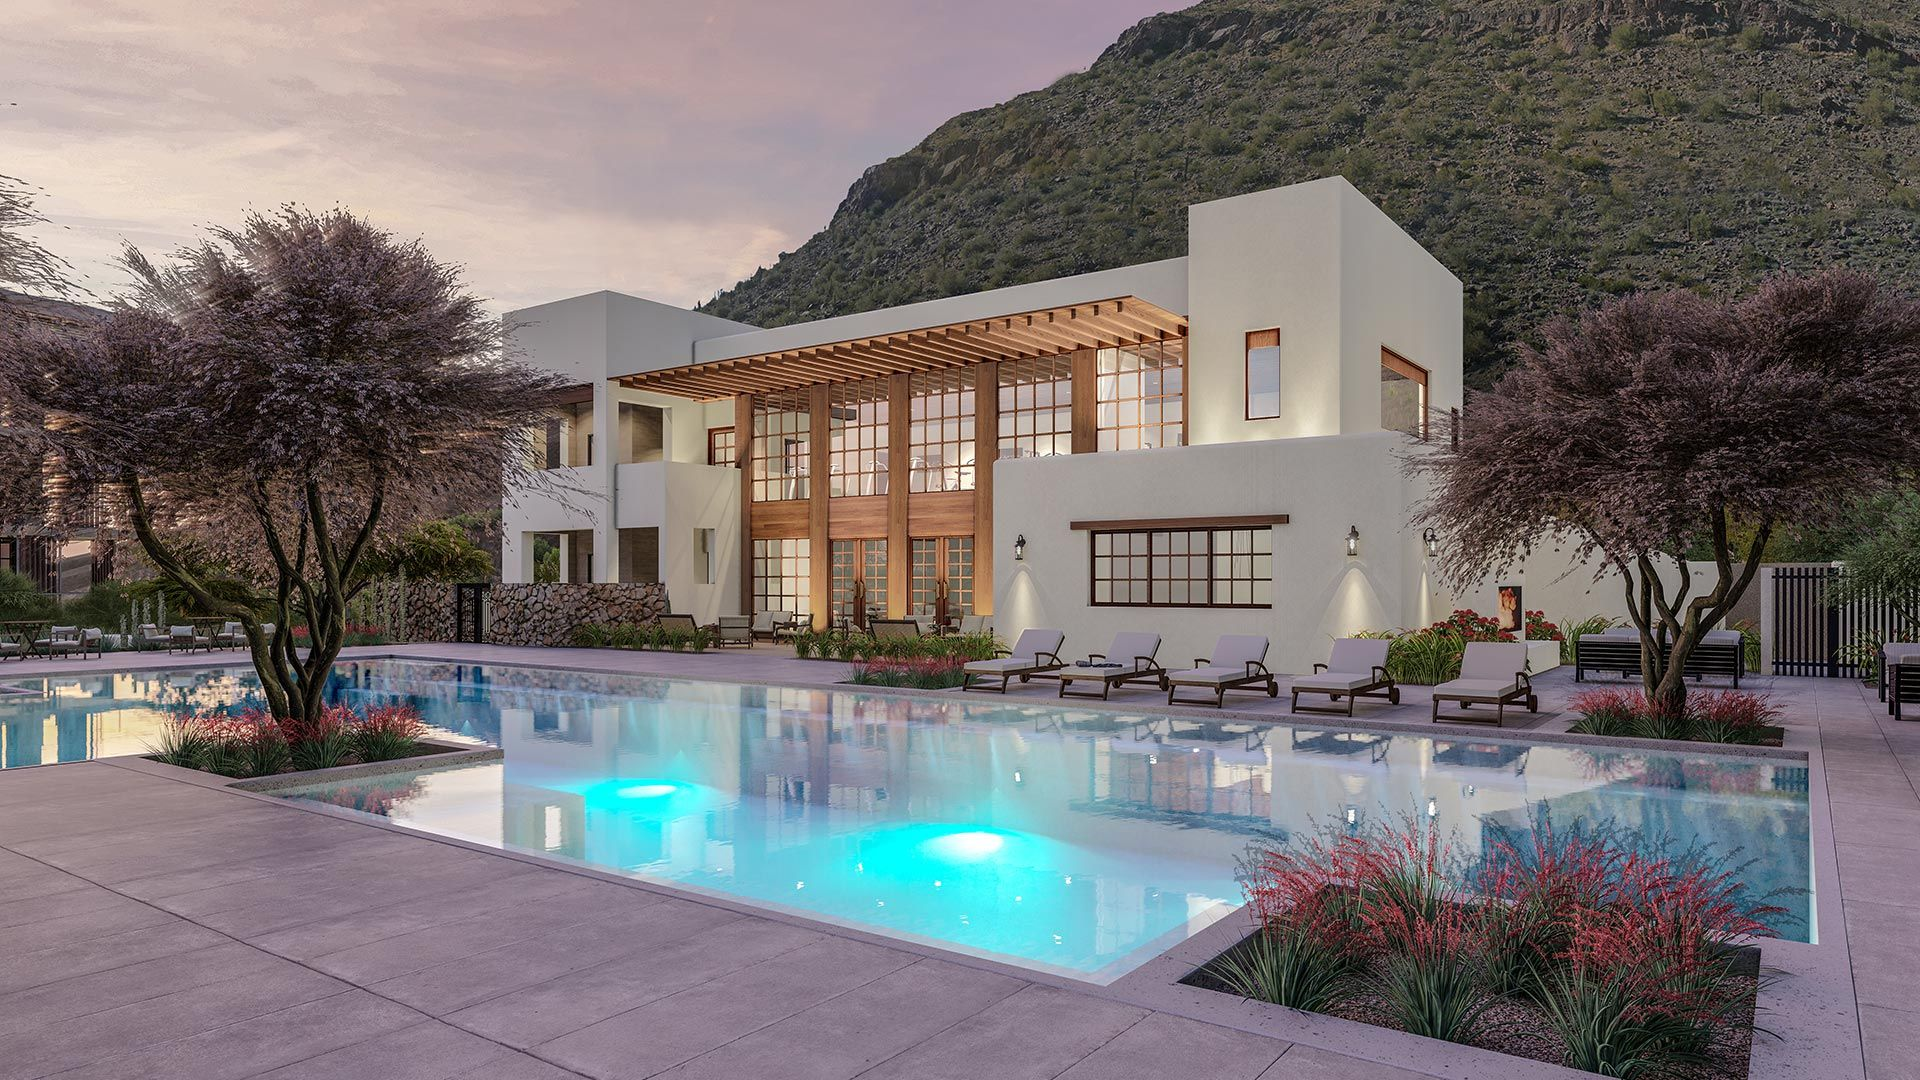 The Mountain Club – a private club that celebrates the iconic Camelback Mountain.